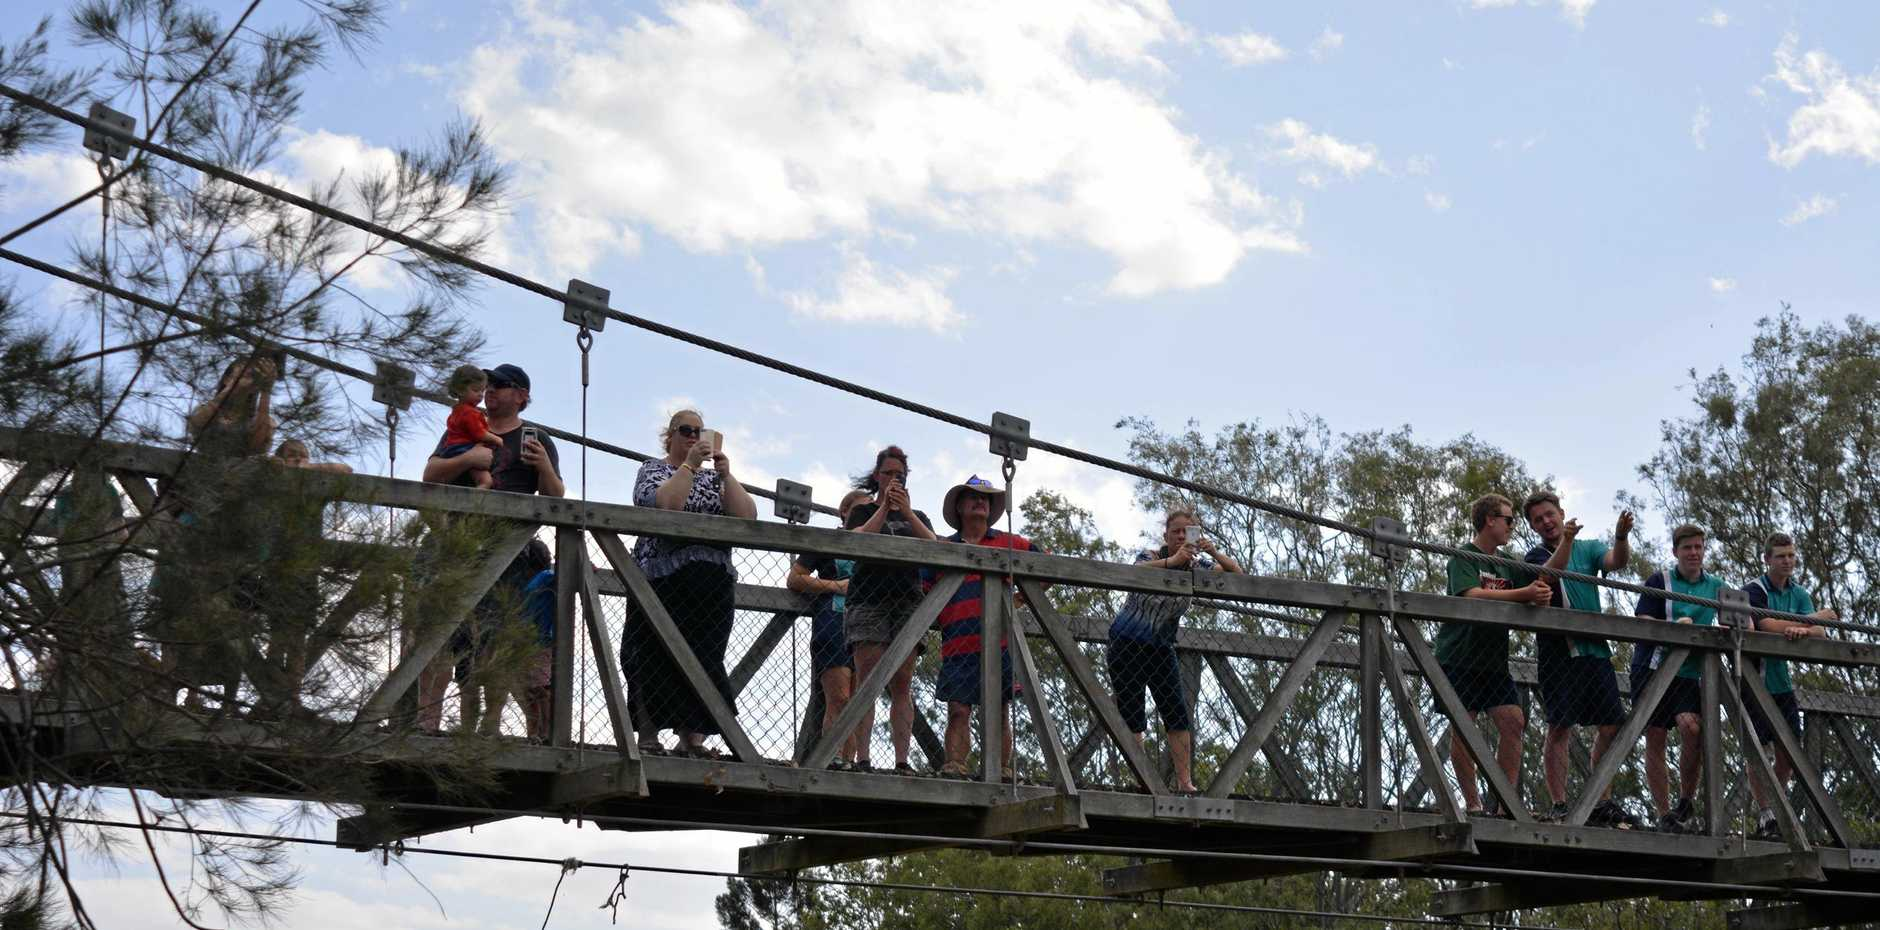 Laidley residents watch from the Nada Lagoon bridge as helicopters fill up with water to battle the Laidley fires.